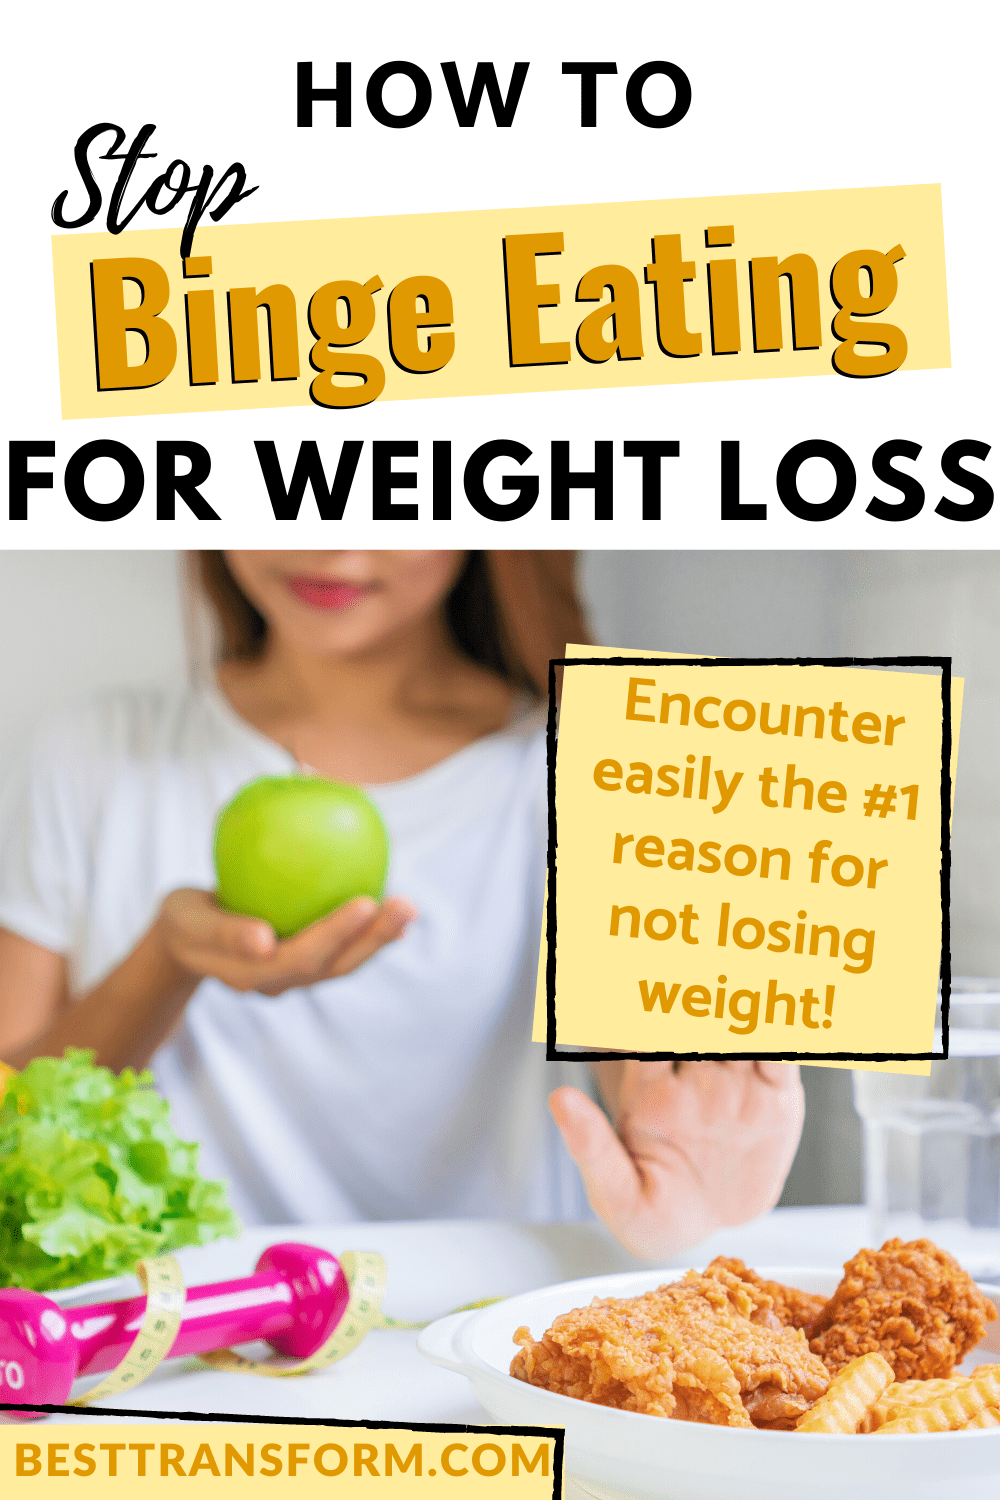 How to Stop Binge Eating for Weight Loss